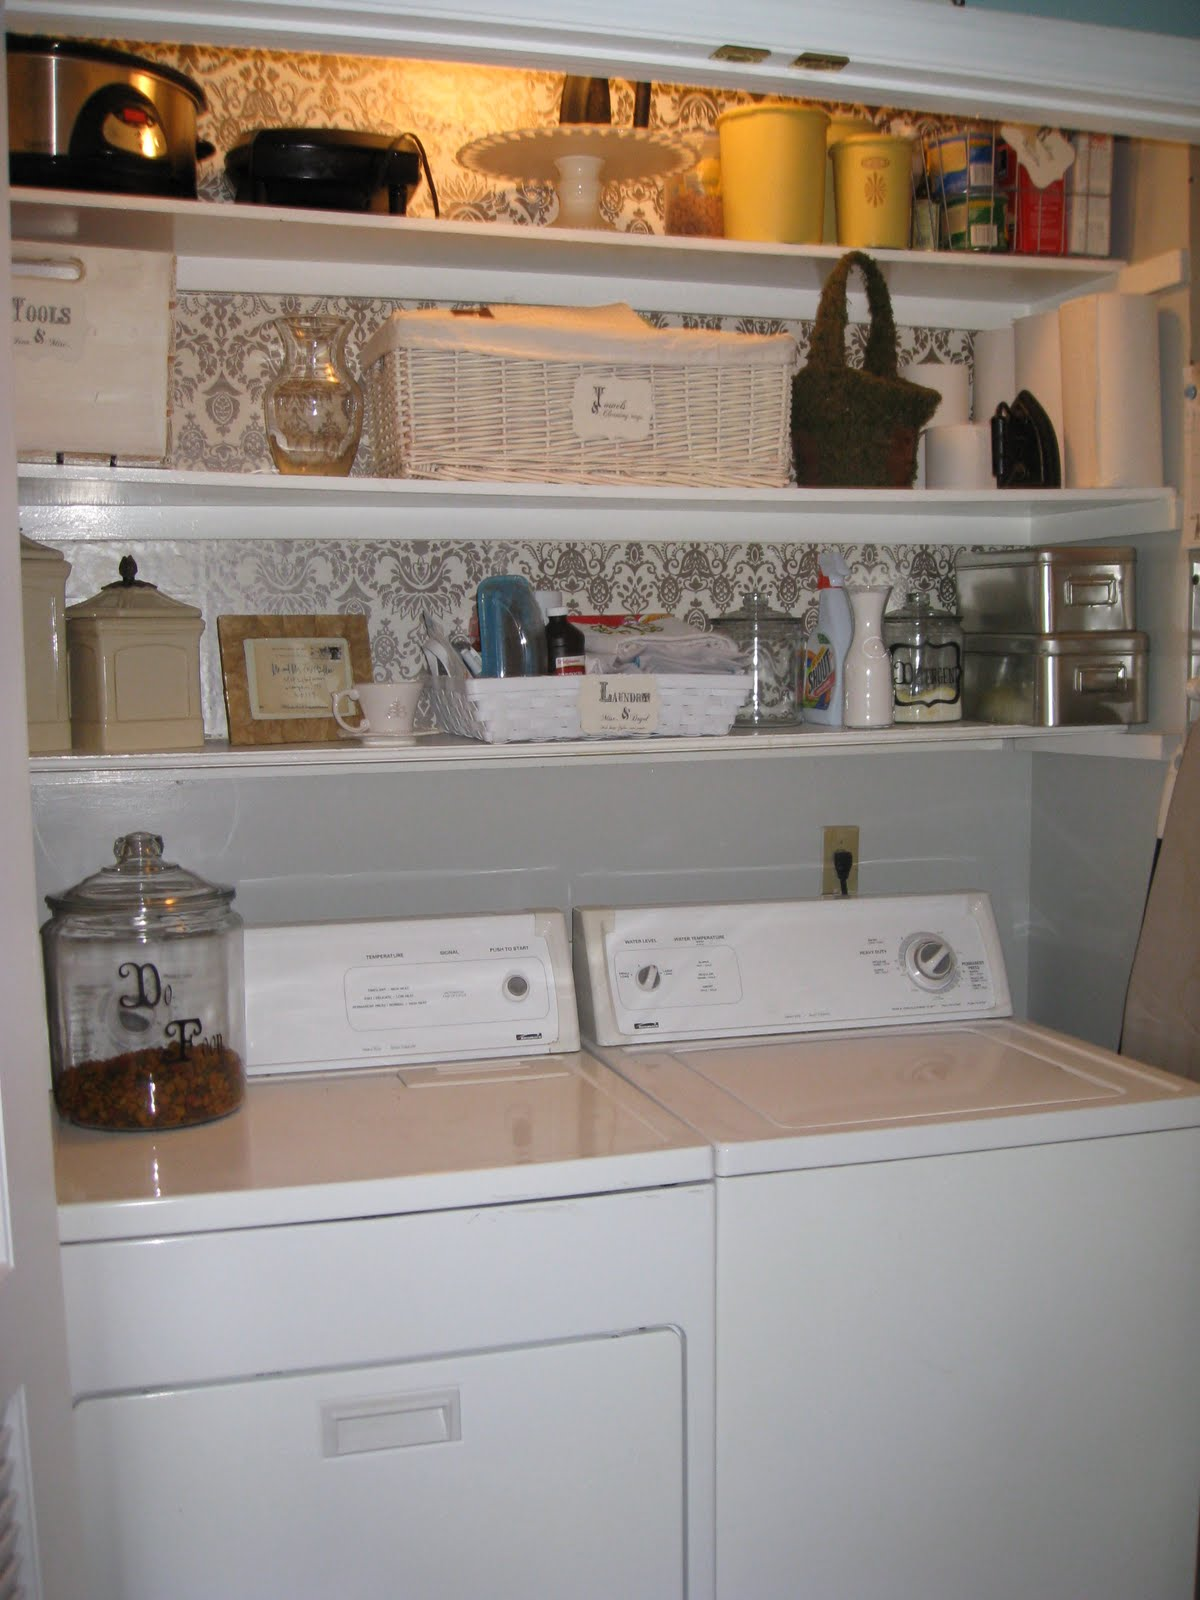 Remodelaholic | Laundry Room Design and Decorating Idea on Laundry Decor Ideas  id=39440